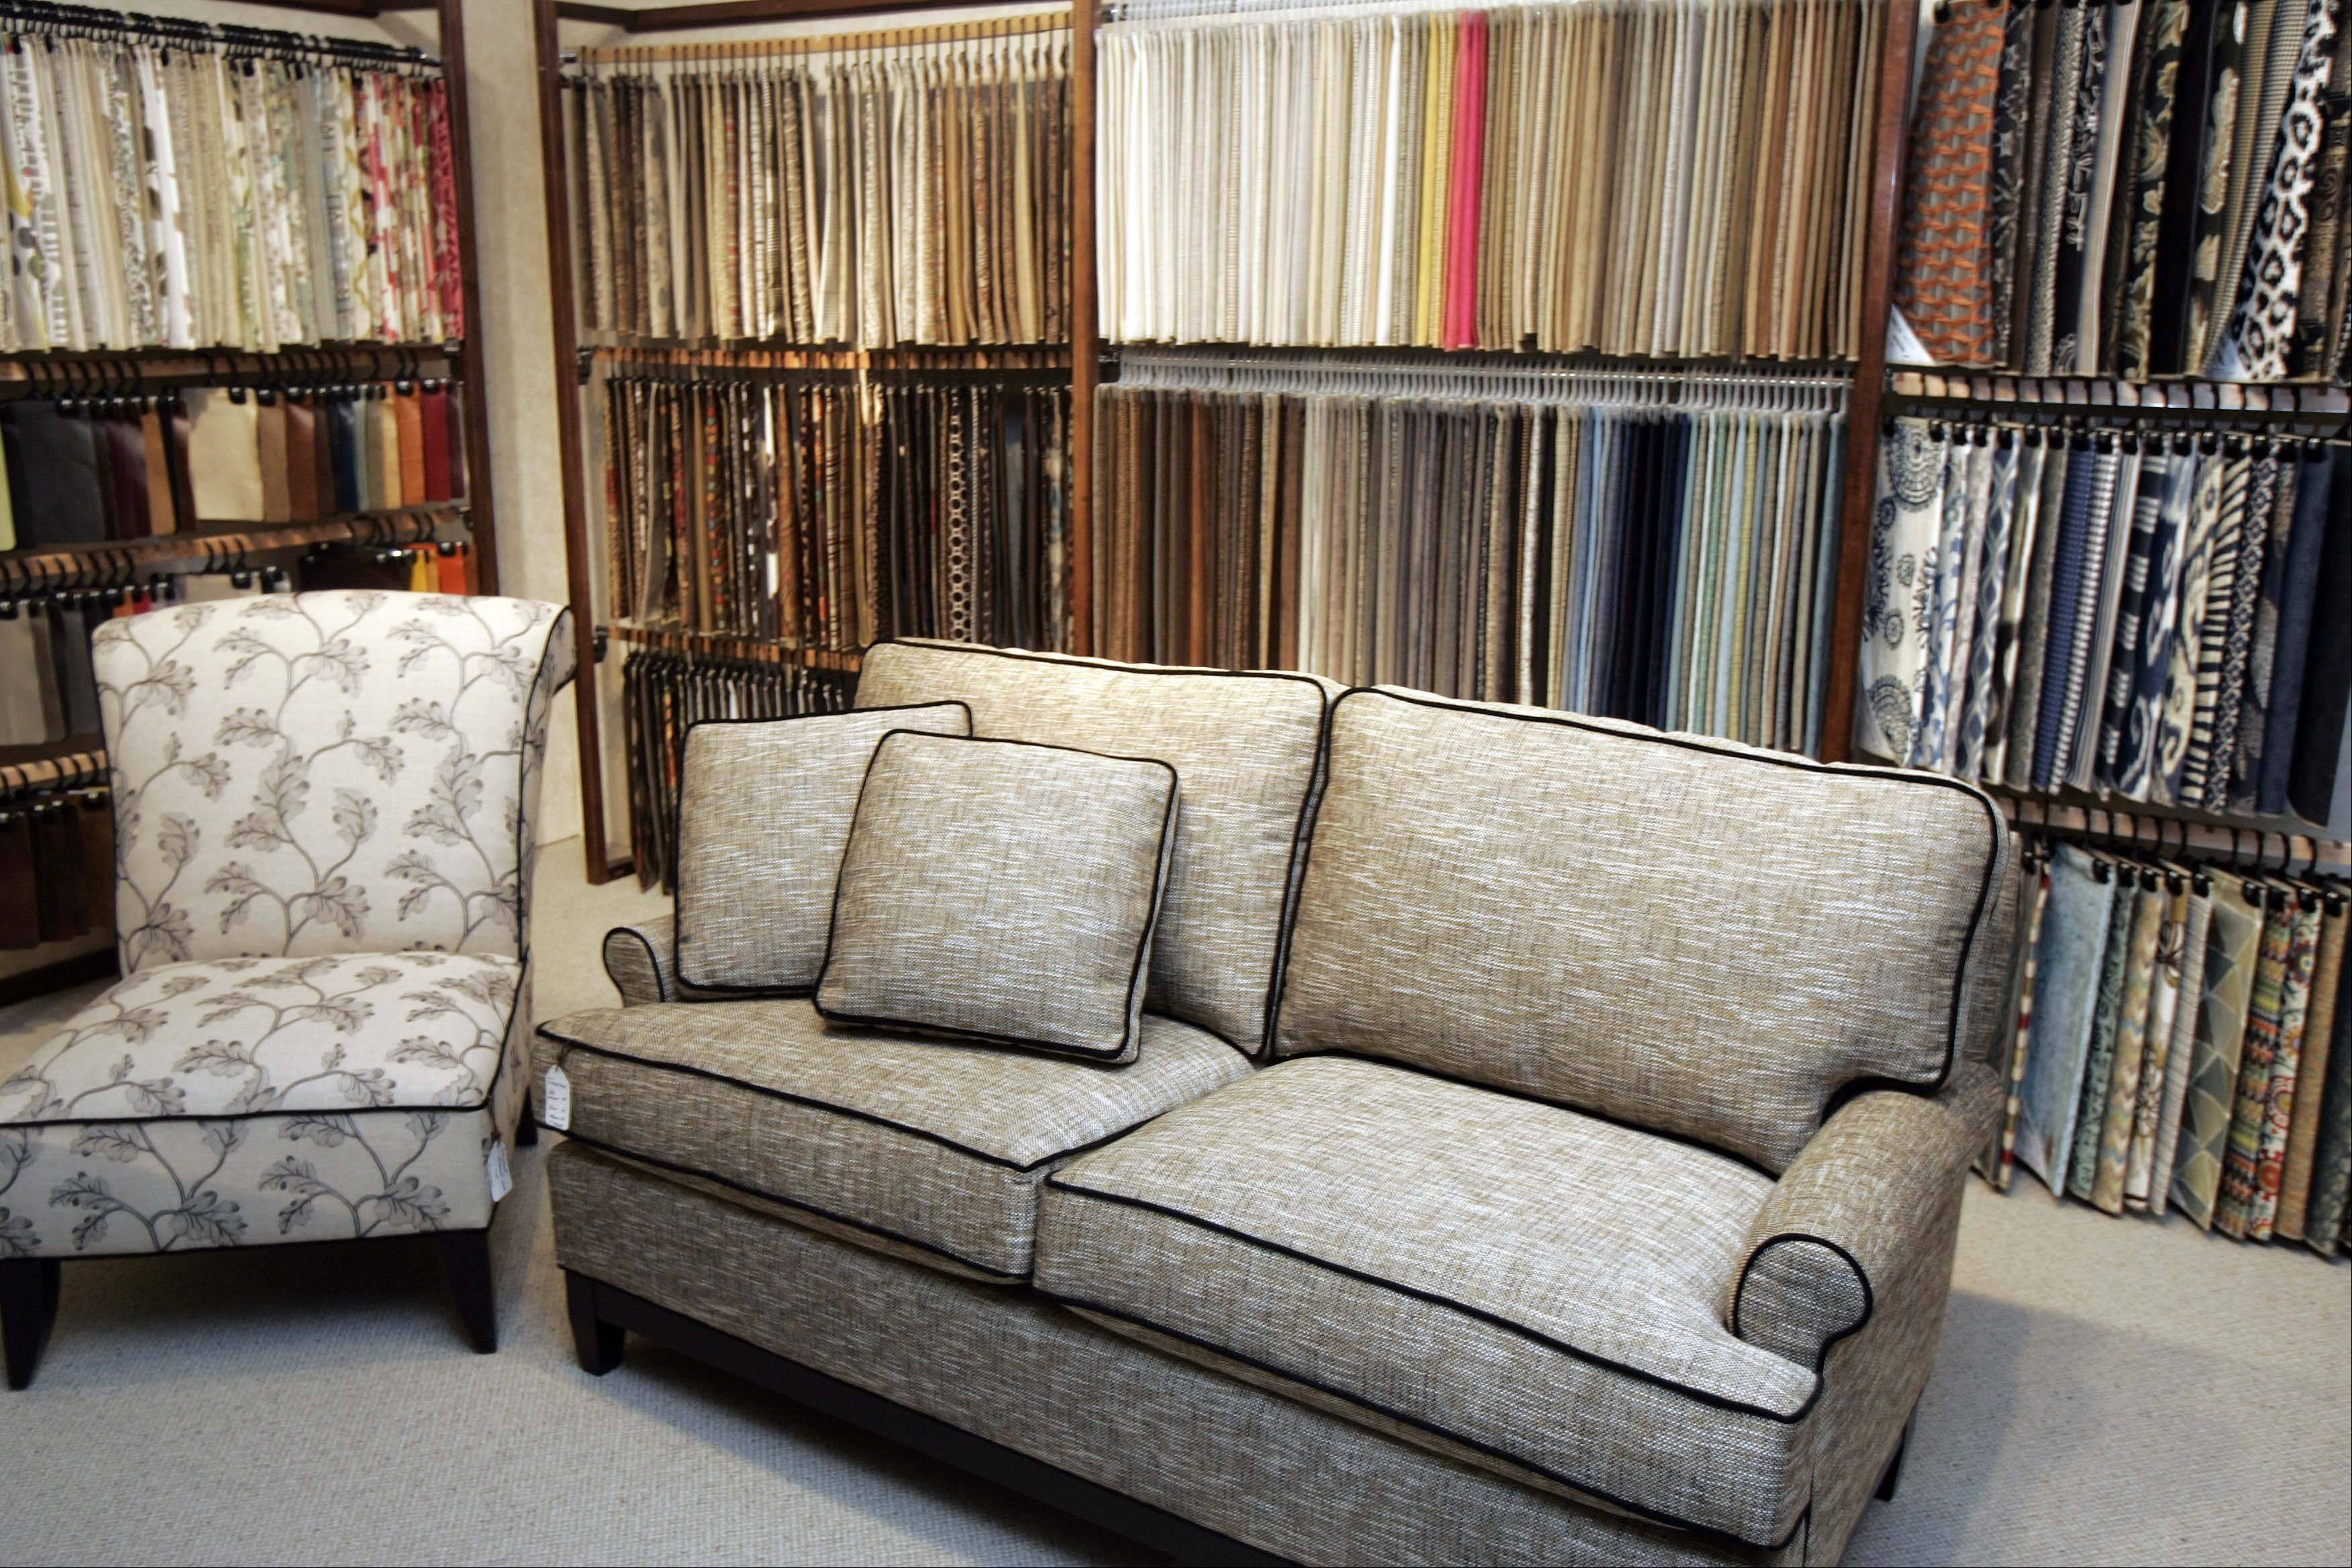 Dow Furniture in North Aurora offers some smaller and compact furniture for those homeowners looking to downsize.